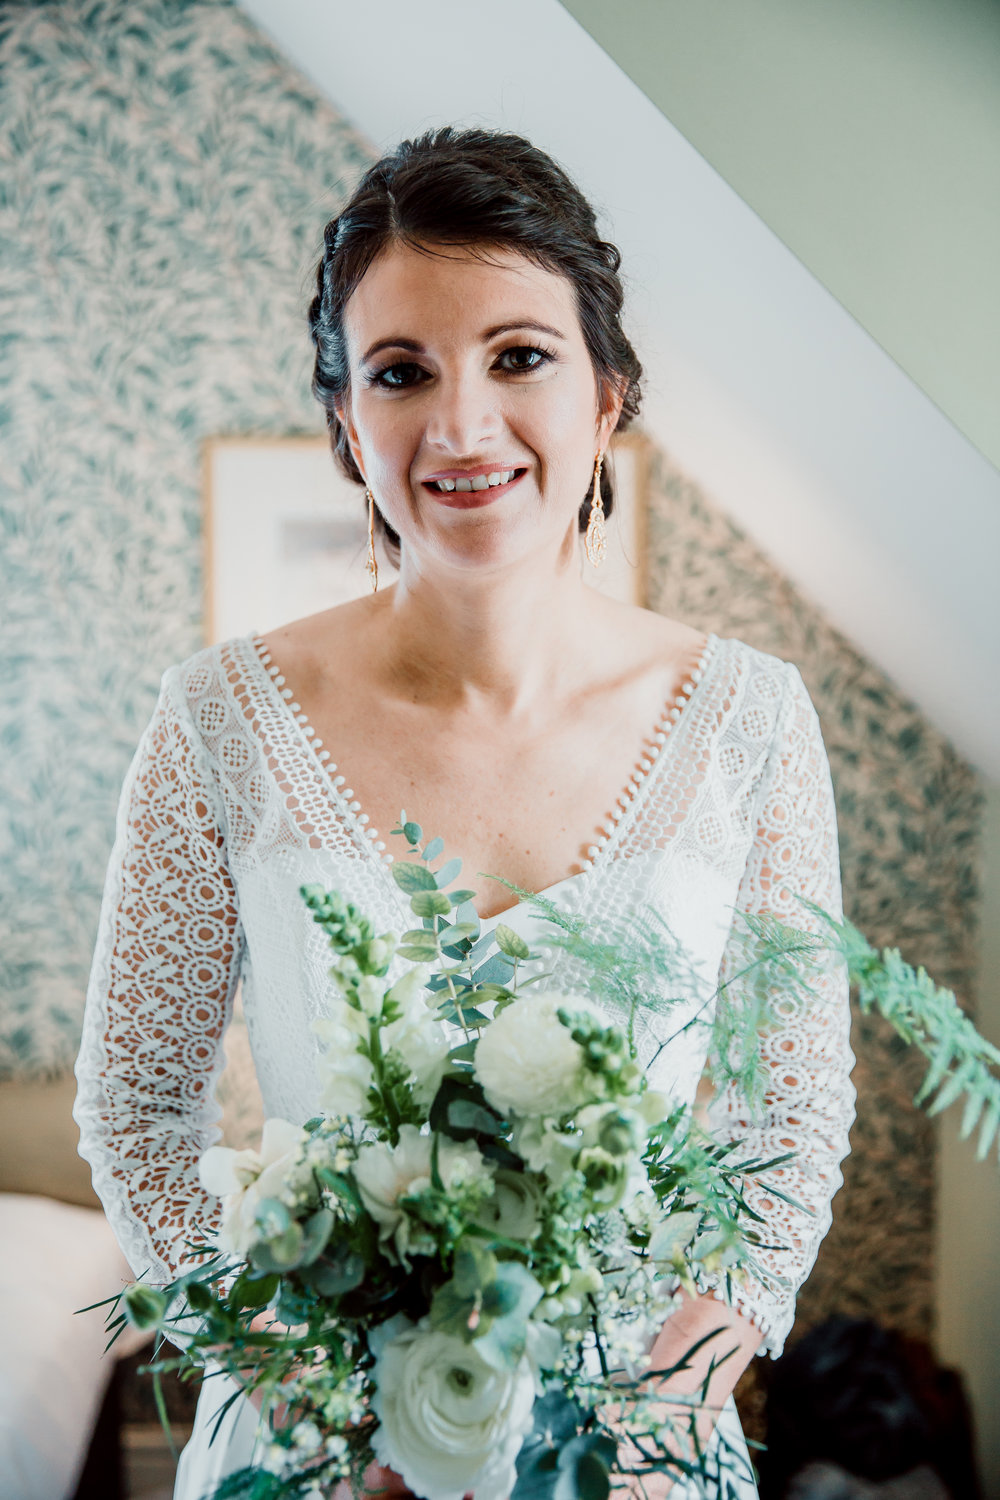 The beautiful bride Vanessa at The Chilterns wedding